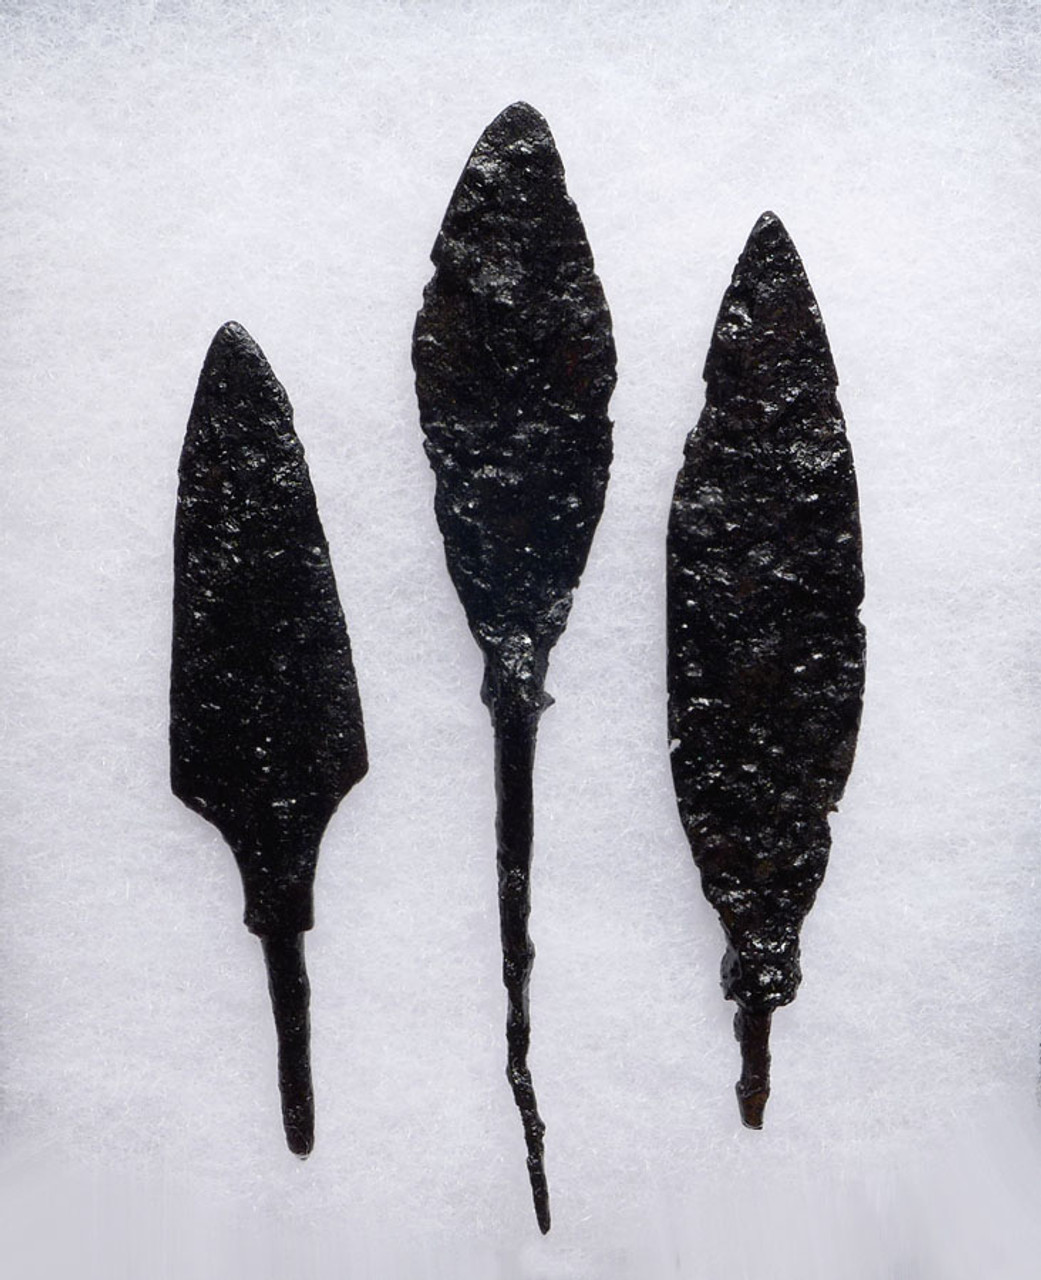 EXCELLENT SET OF 3 LARGE ANCIENT ROMAN IRON ARROWHEADS FROM THE BYZANTINE ERA *R179